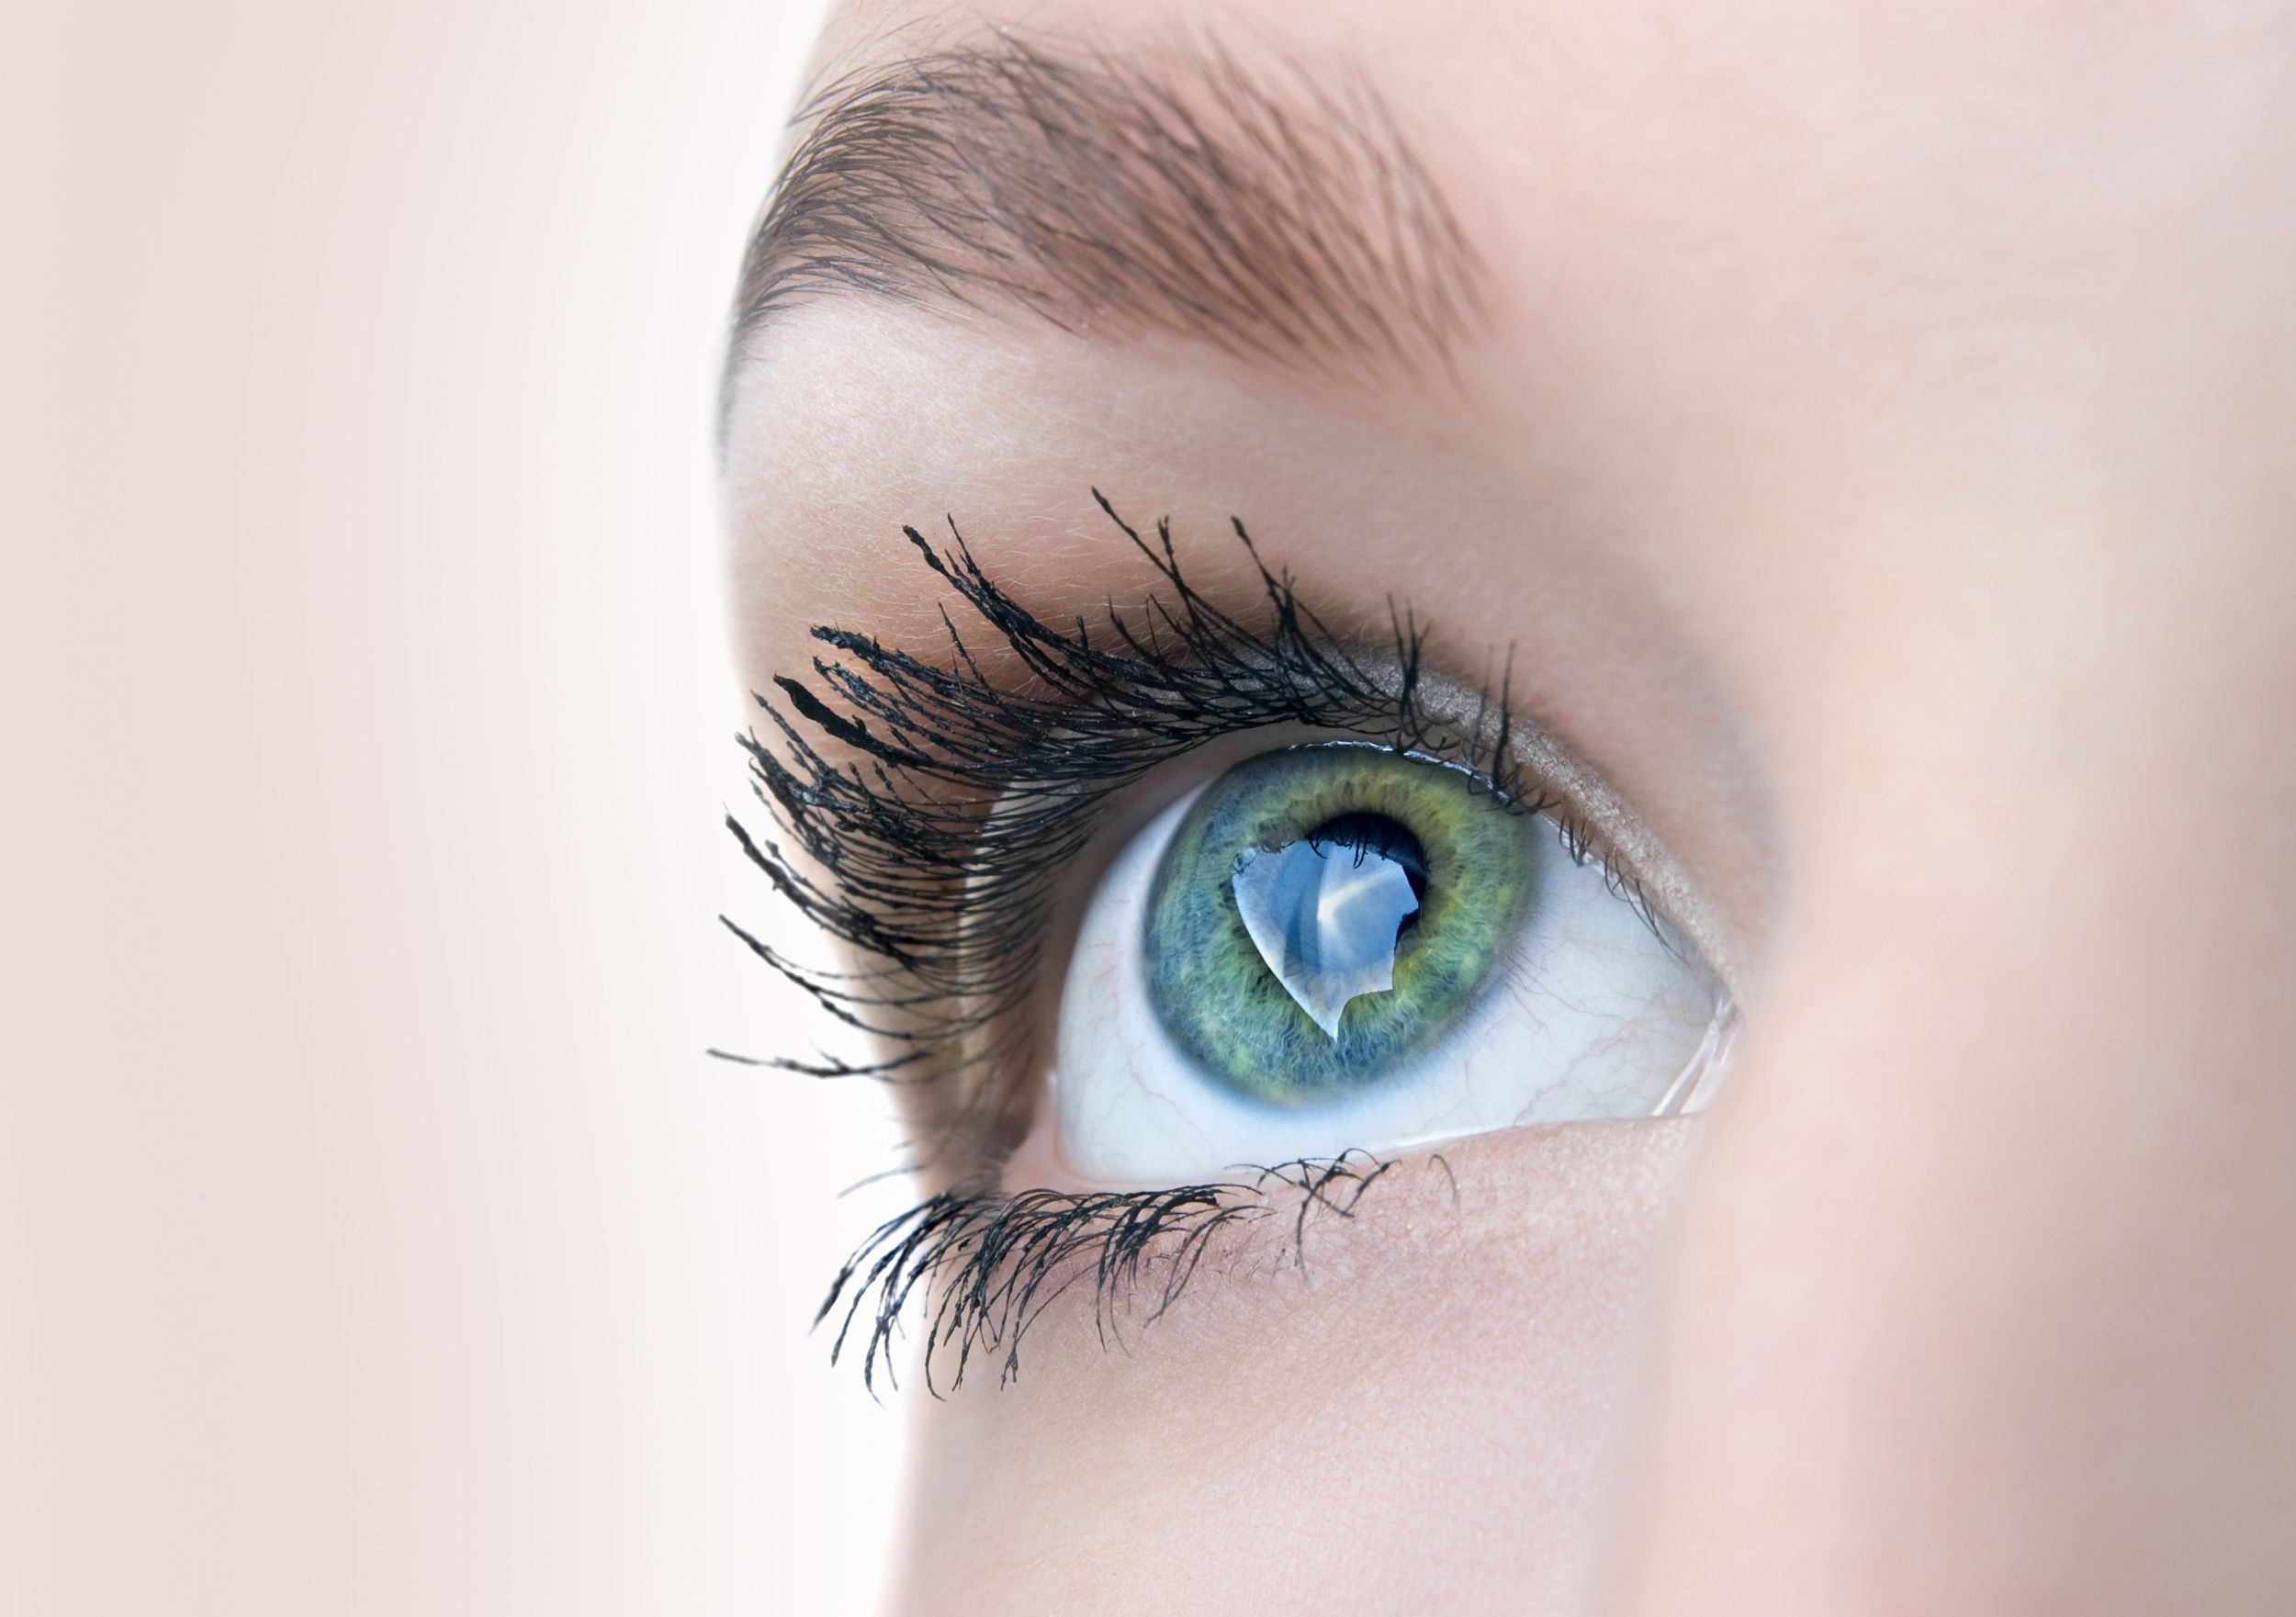 Eyelash extensions 101: Everything you need to know about lash extensions